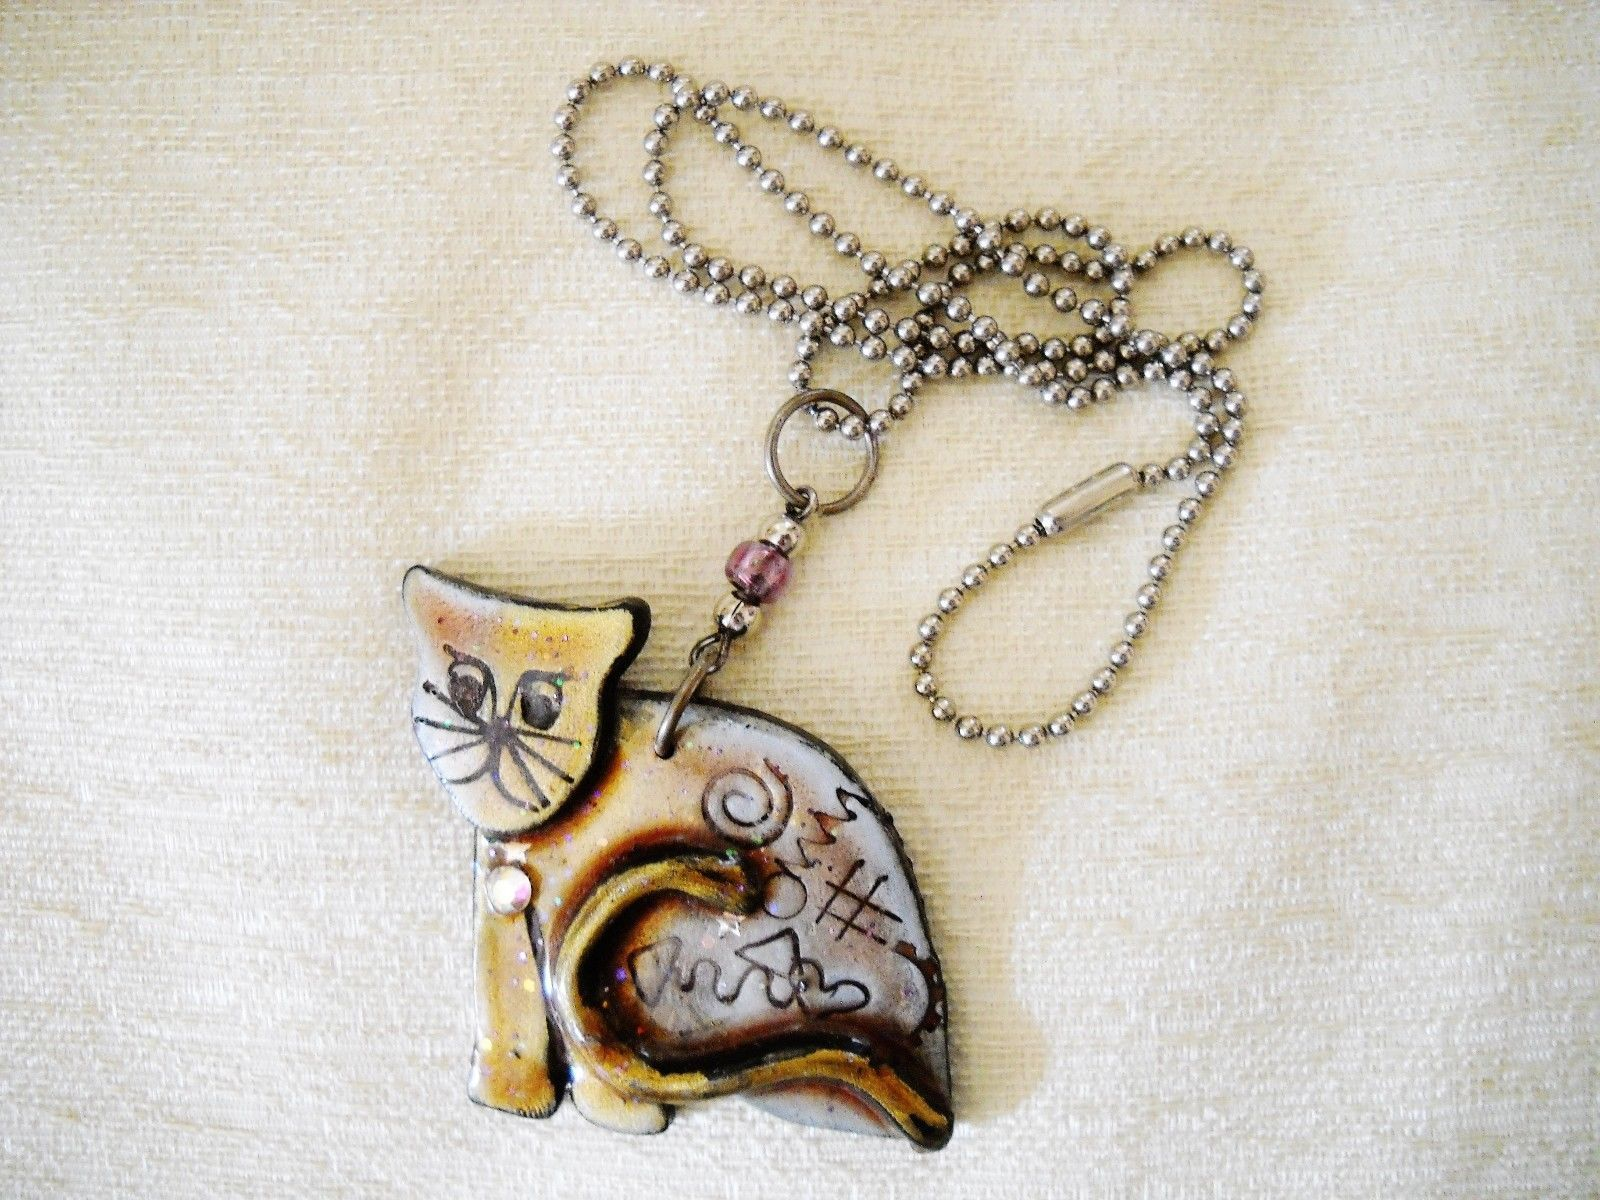 NWOT FUSED PLASTIC CAT PENDANT ON SILVER TONE CHAIN, SIGNED BY ARTIST